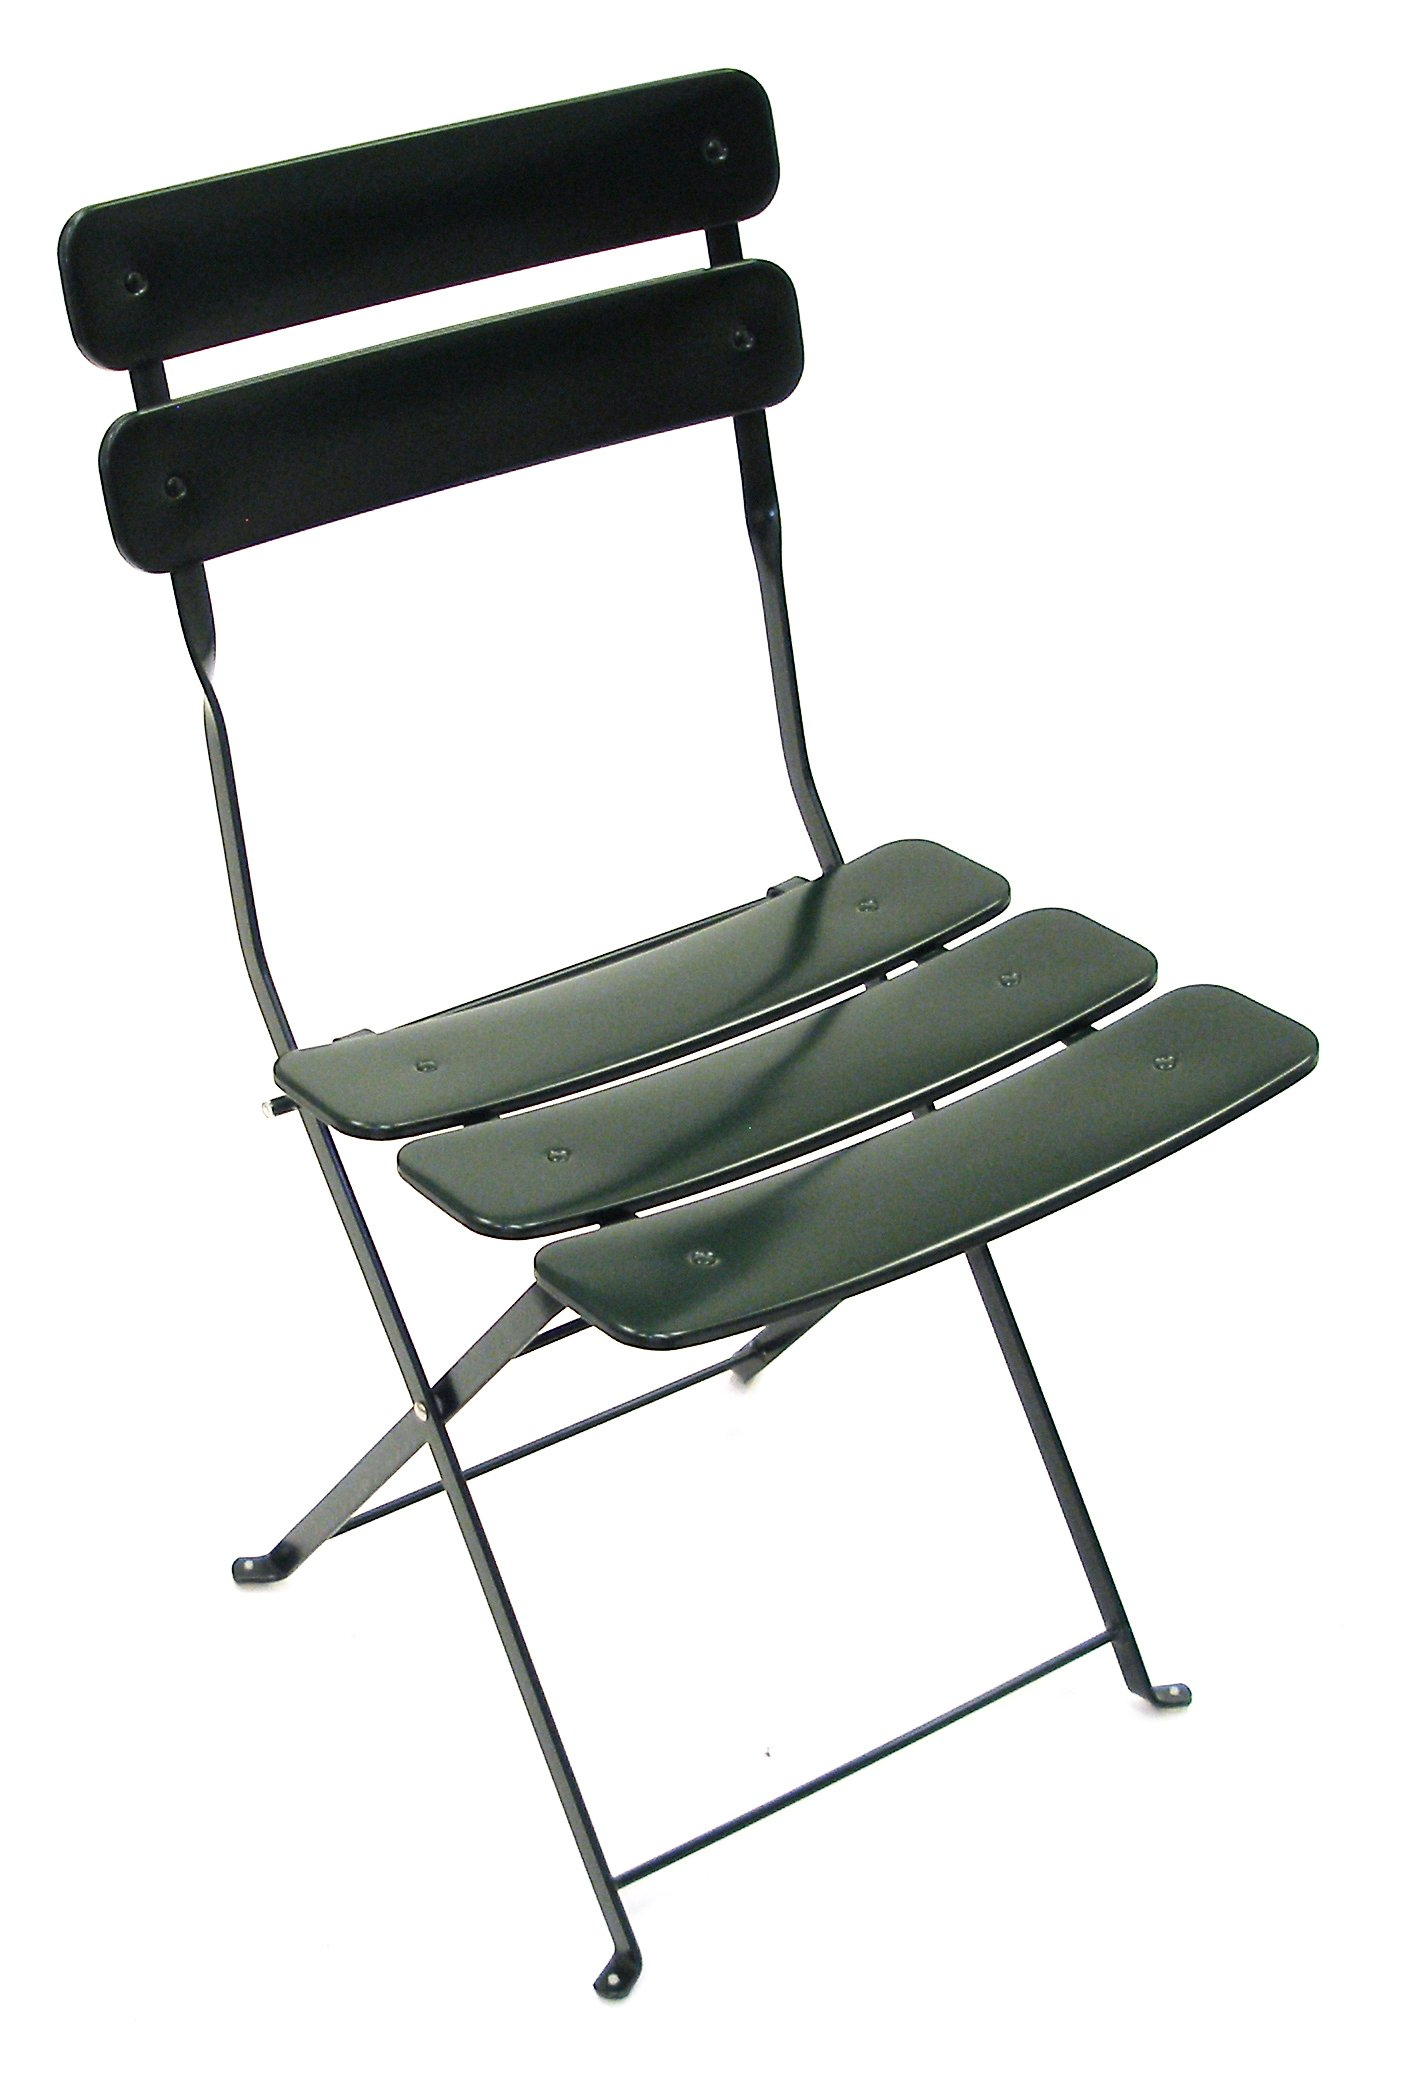 ATC Powder Coated Steel Outdoor Folding Bistro Chair, Green (Pack of 2)